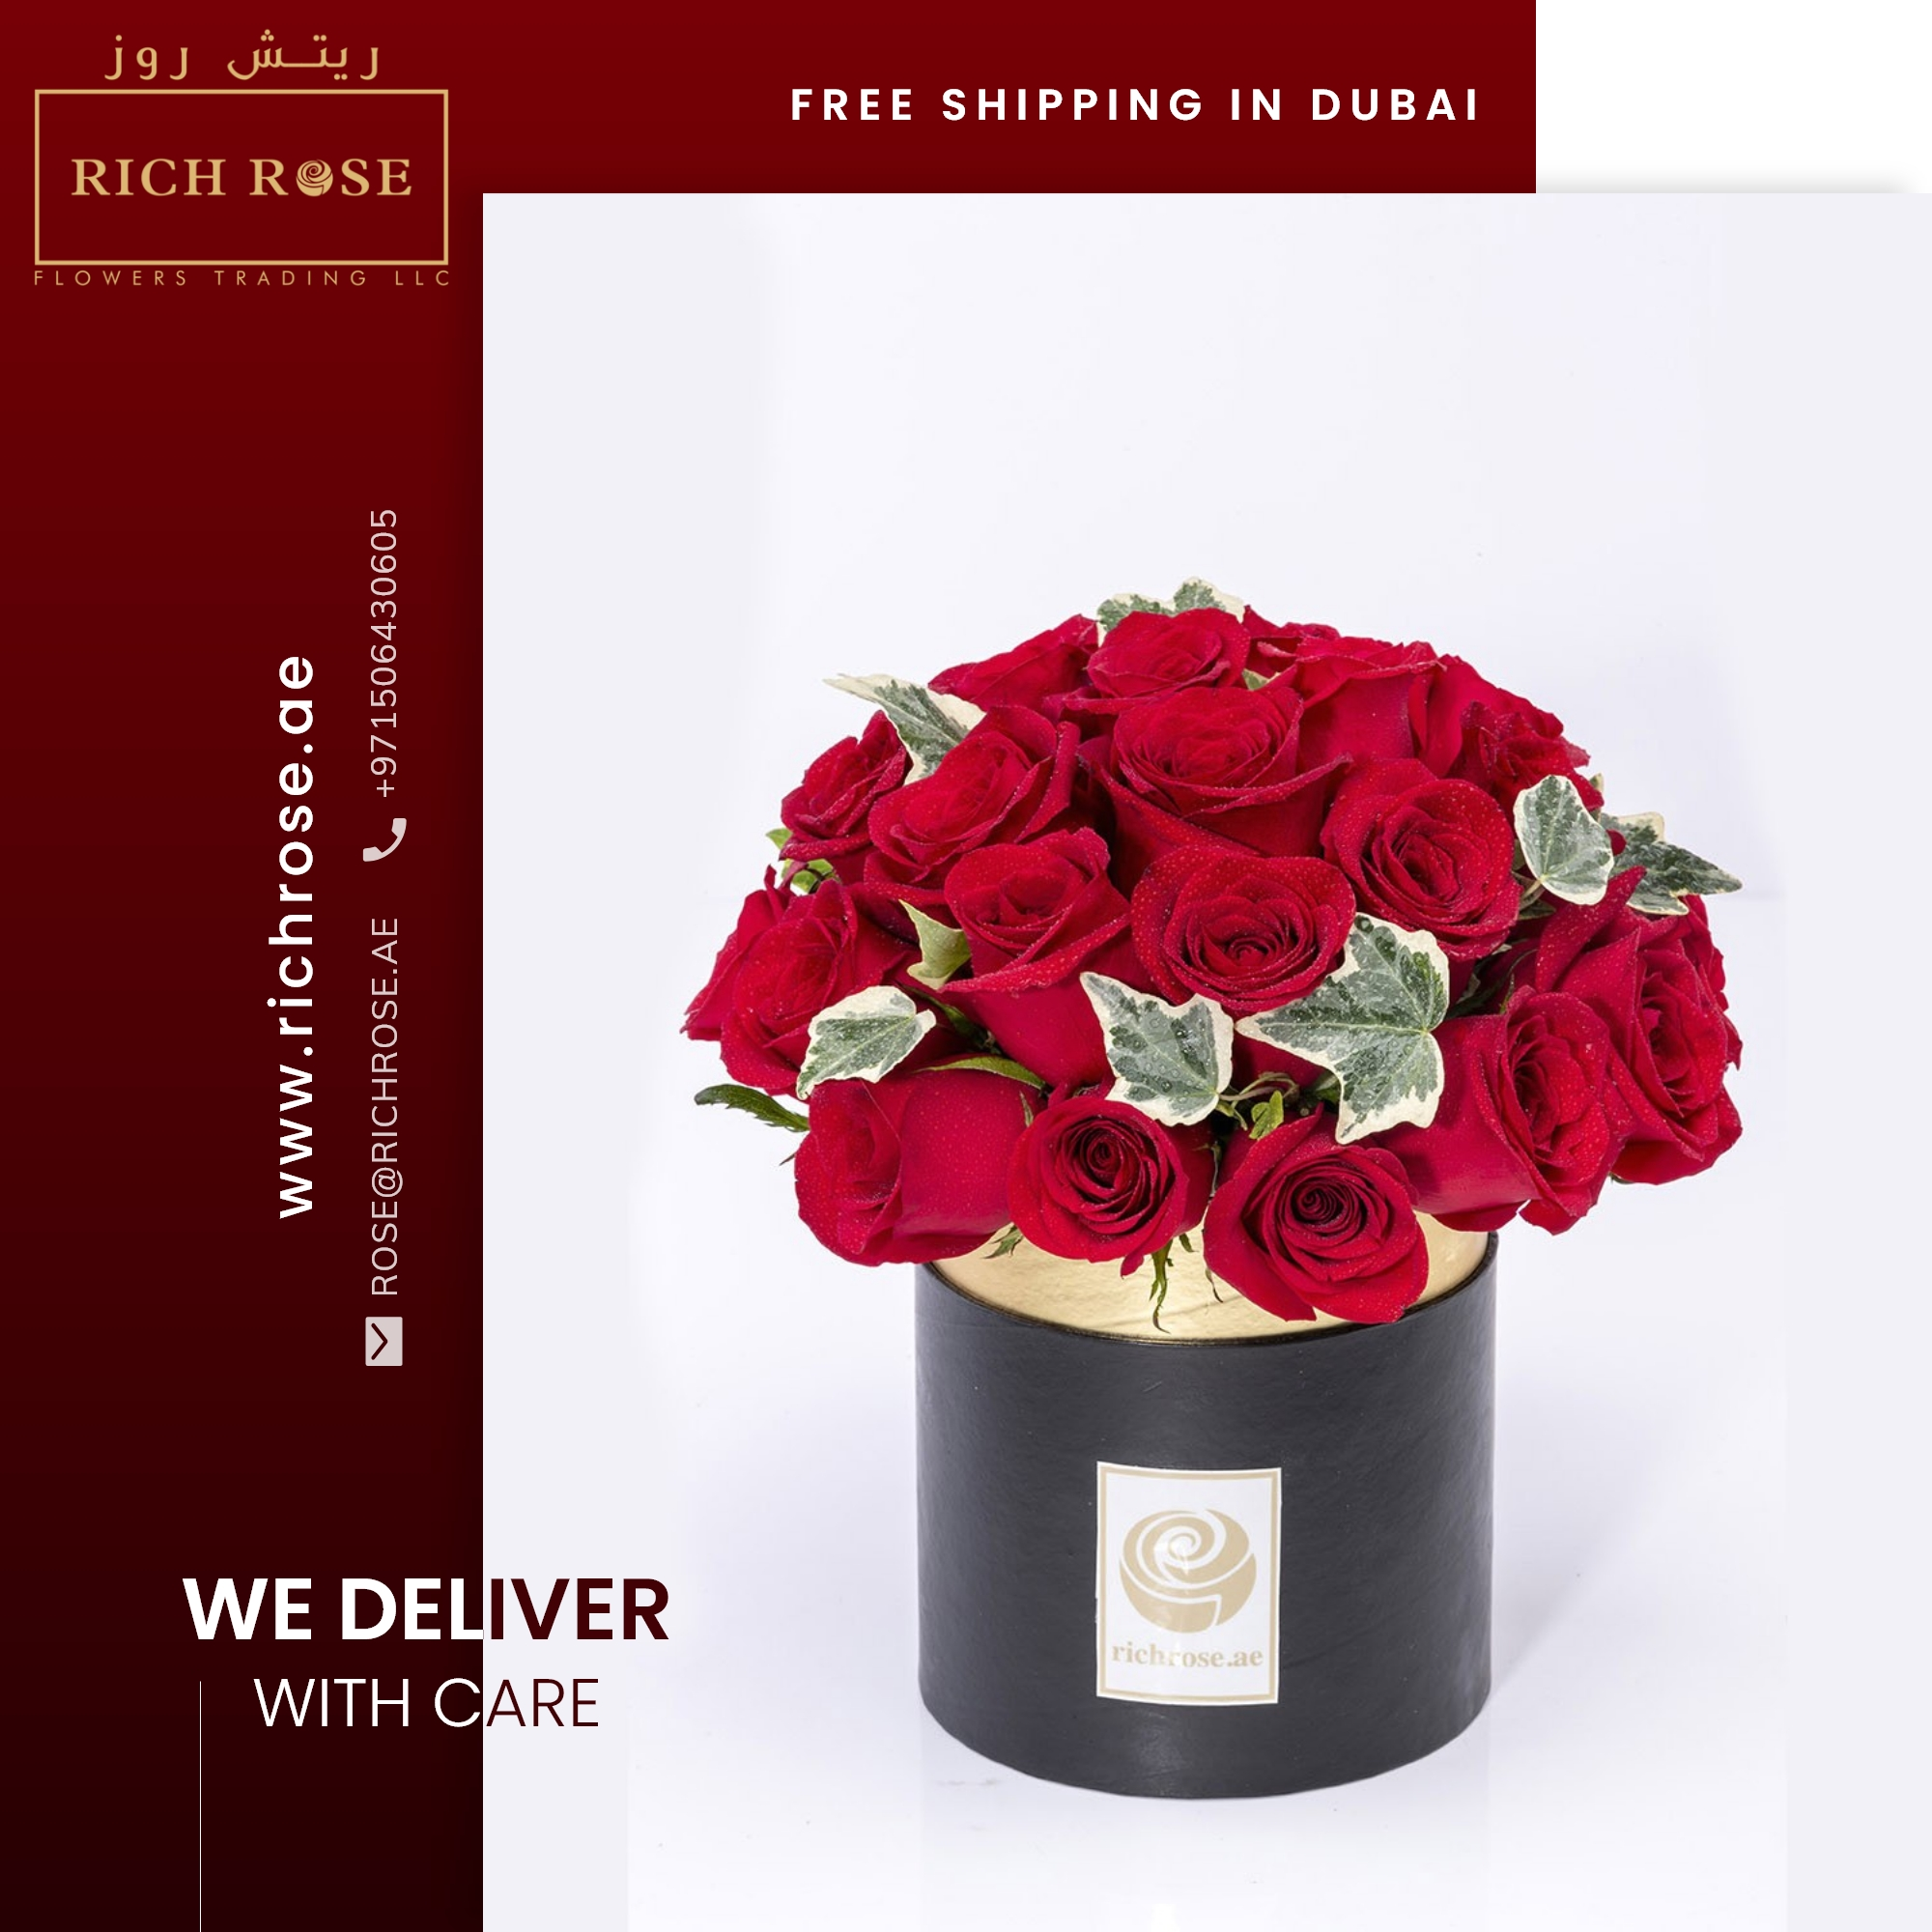 Richrose launches Online Birthday Flowers Delivery Service in Dubai